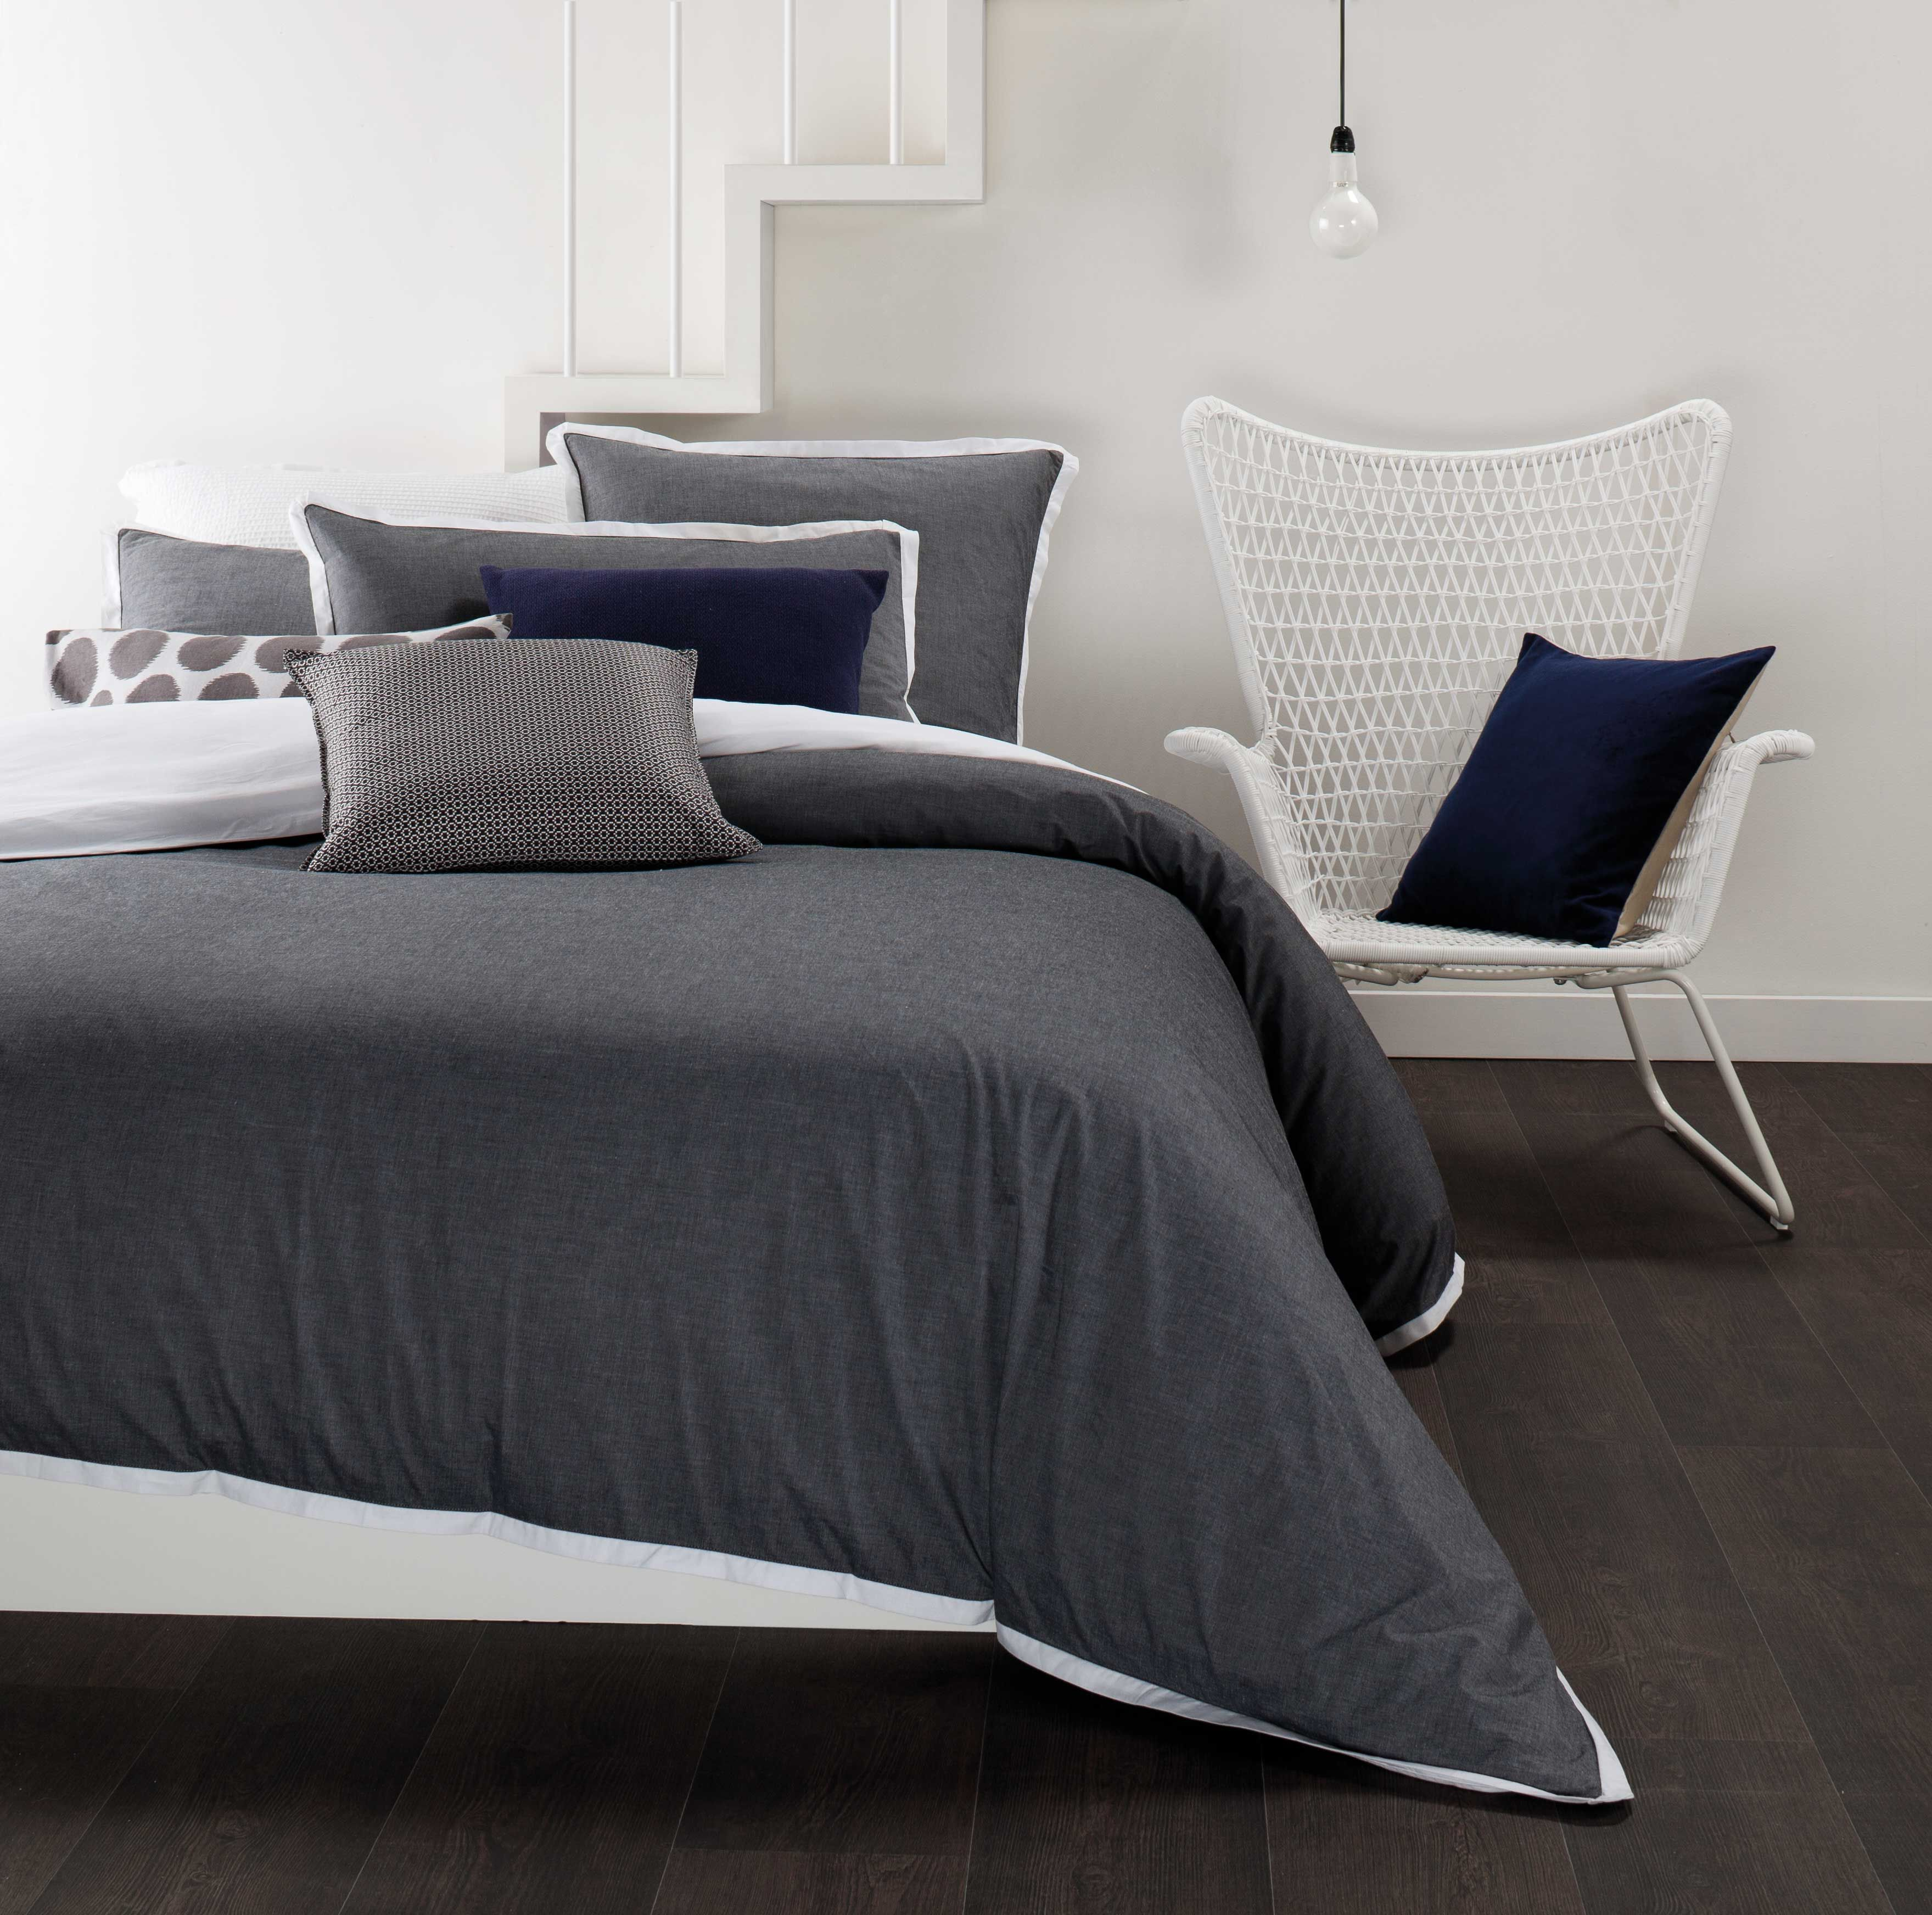 Individual Items :: Quilt Cover Sets :: Orson Charcoal Quilt Cover ... : charcoal gray quilt - Adamdwight.com